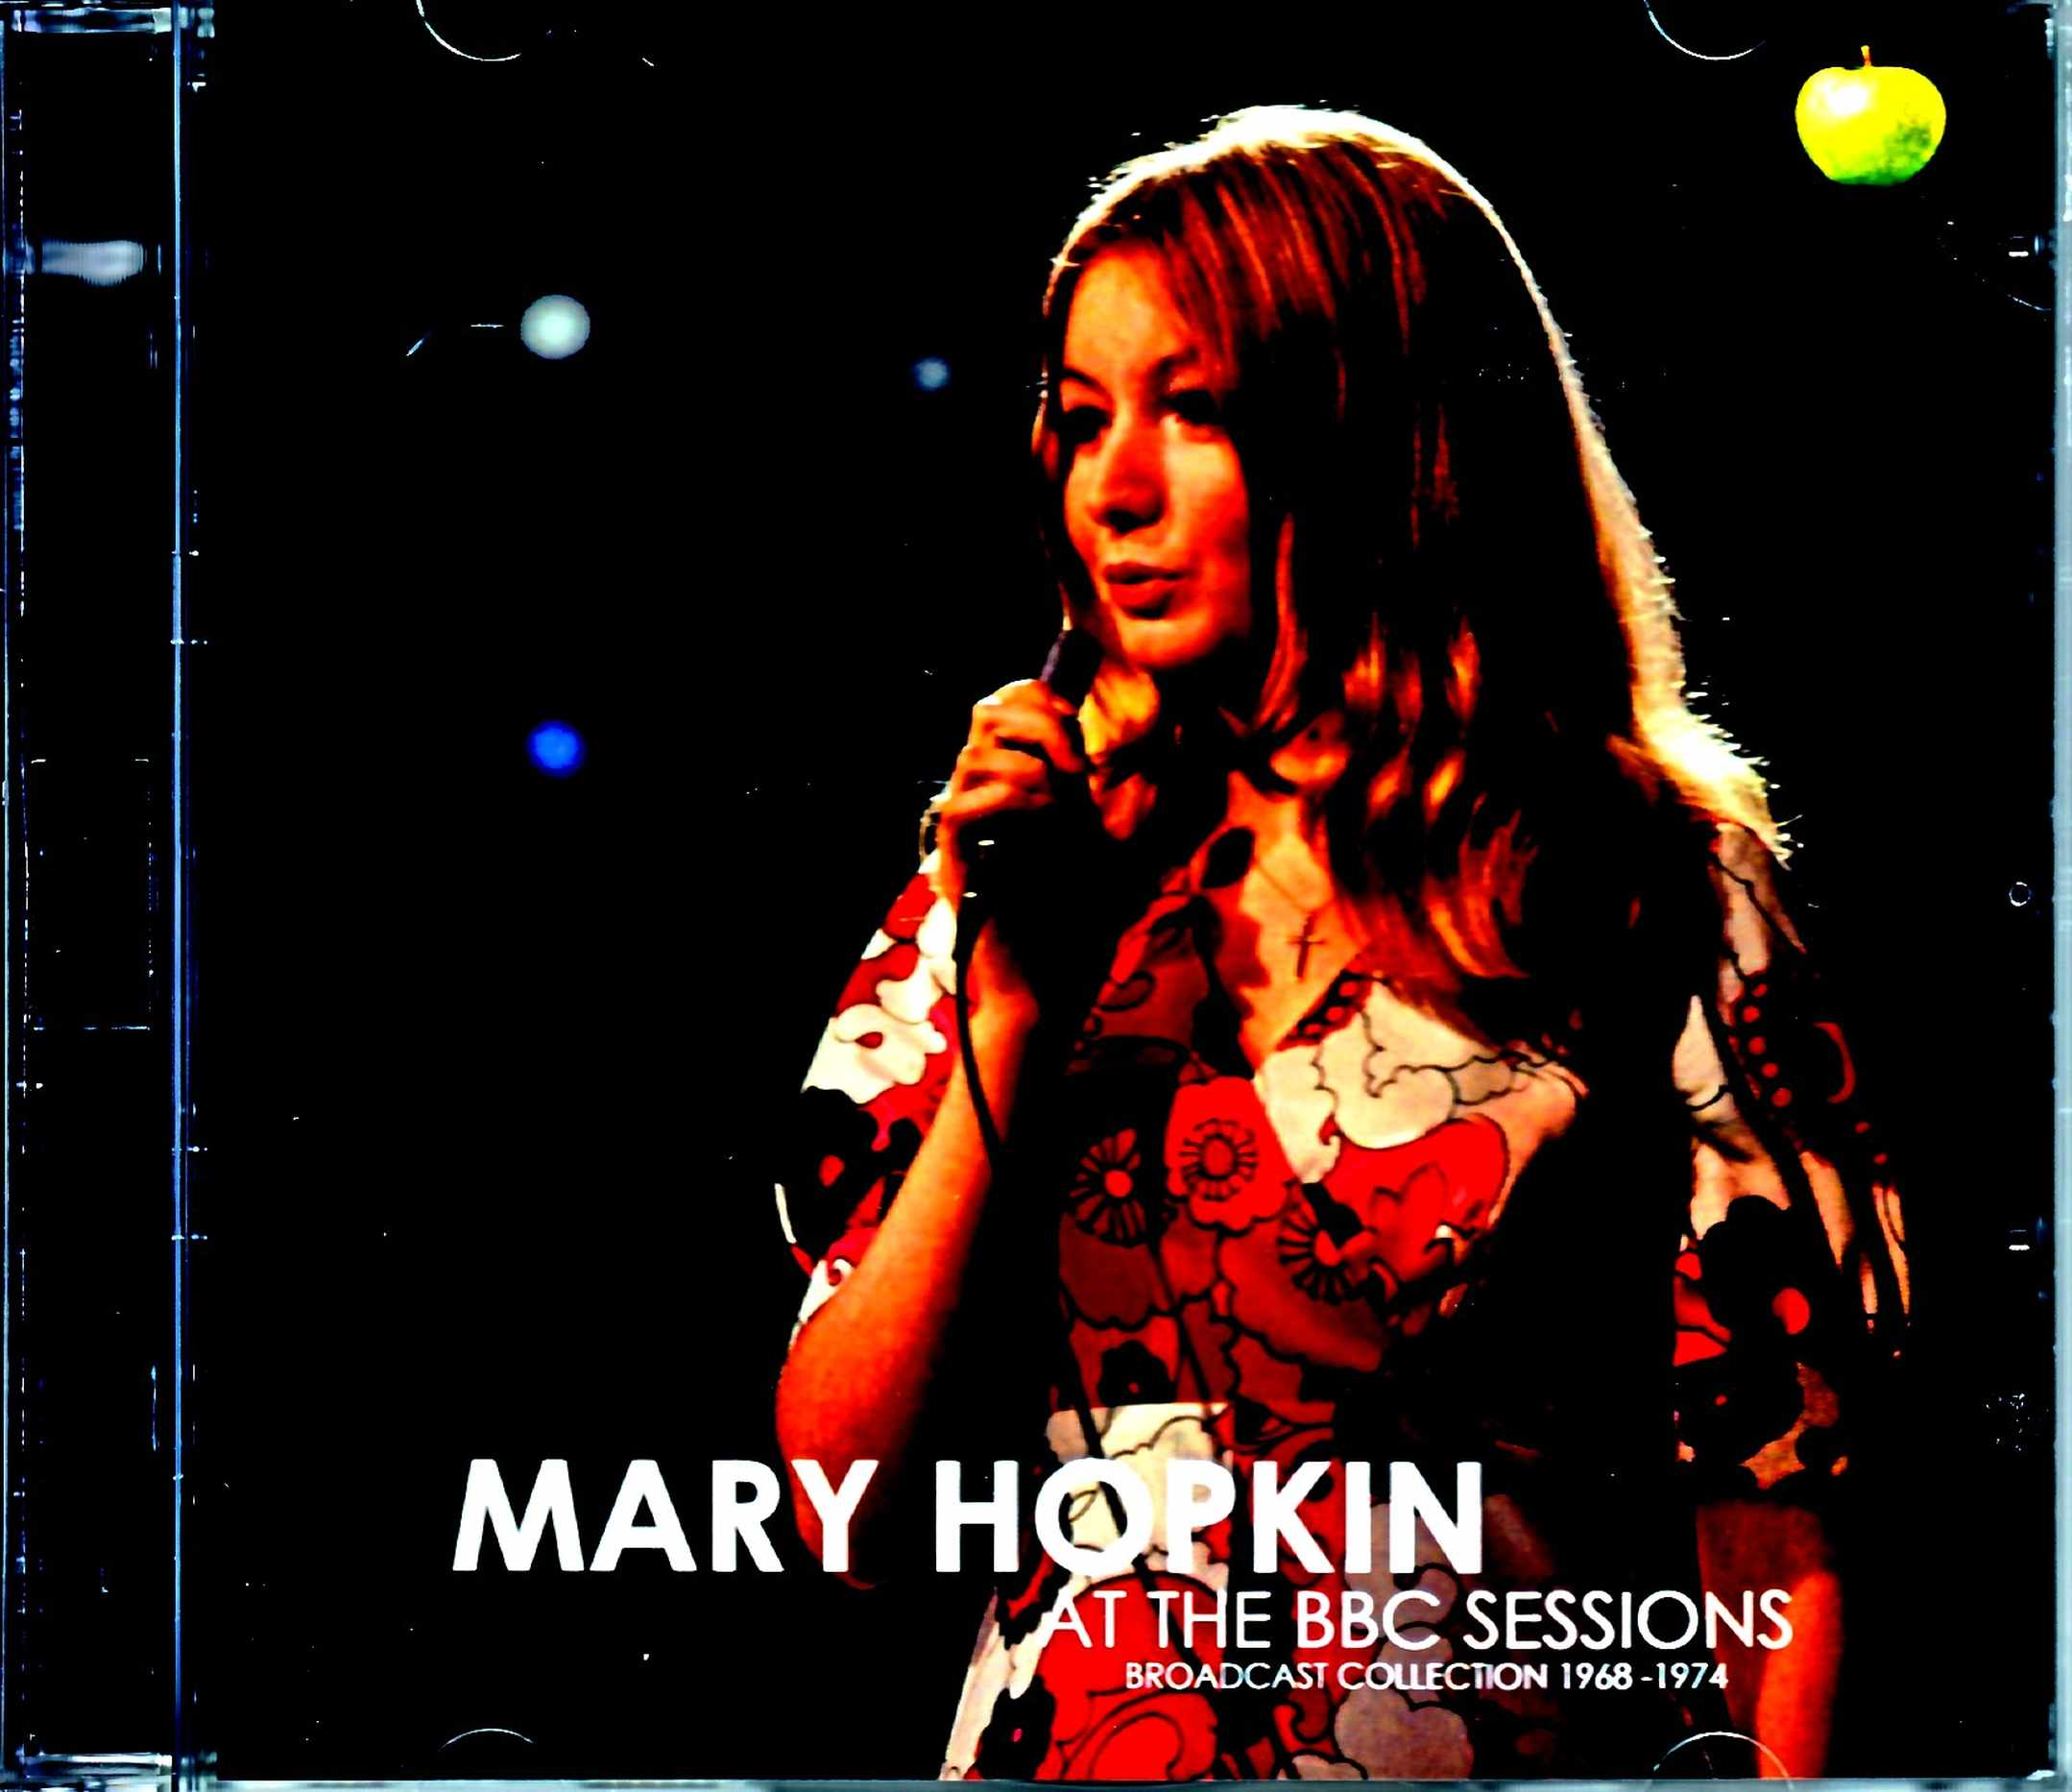 Mary Hopkin メリー・ホプキン/BBC Sessions Broadcast Collection 1968-1974